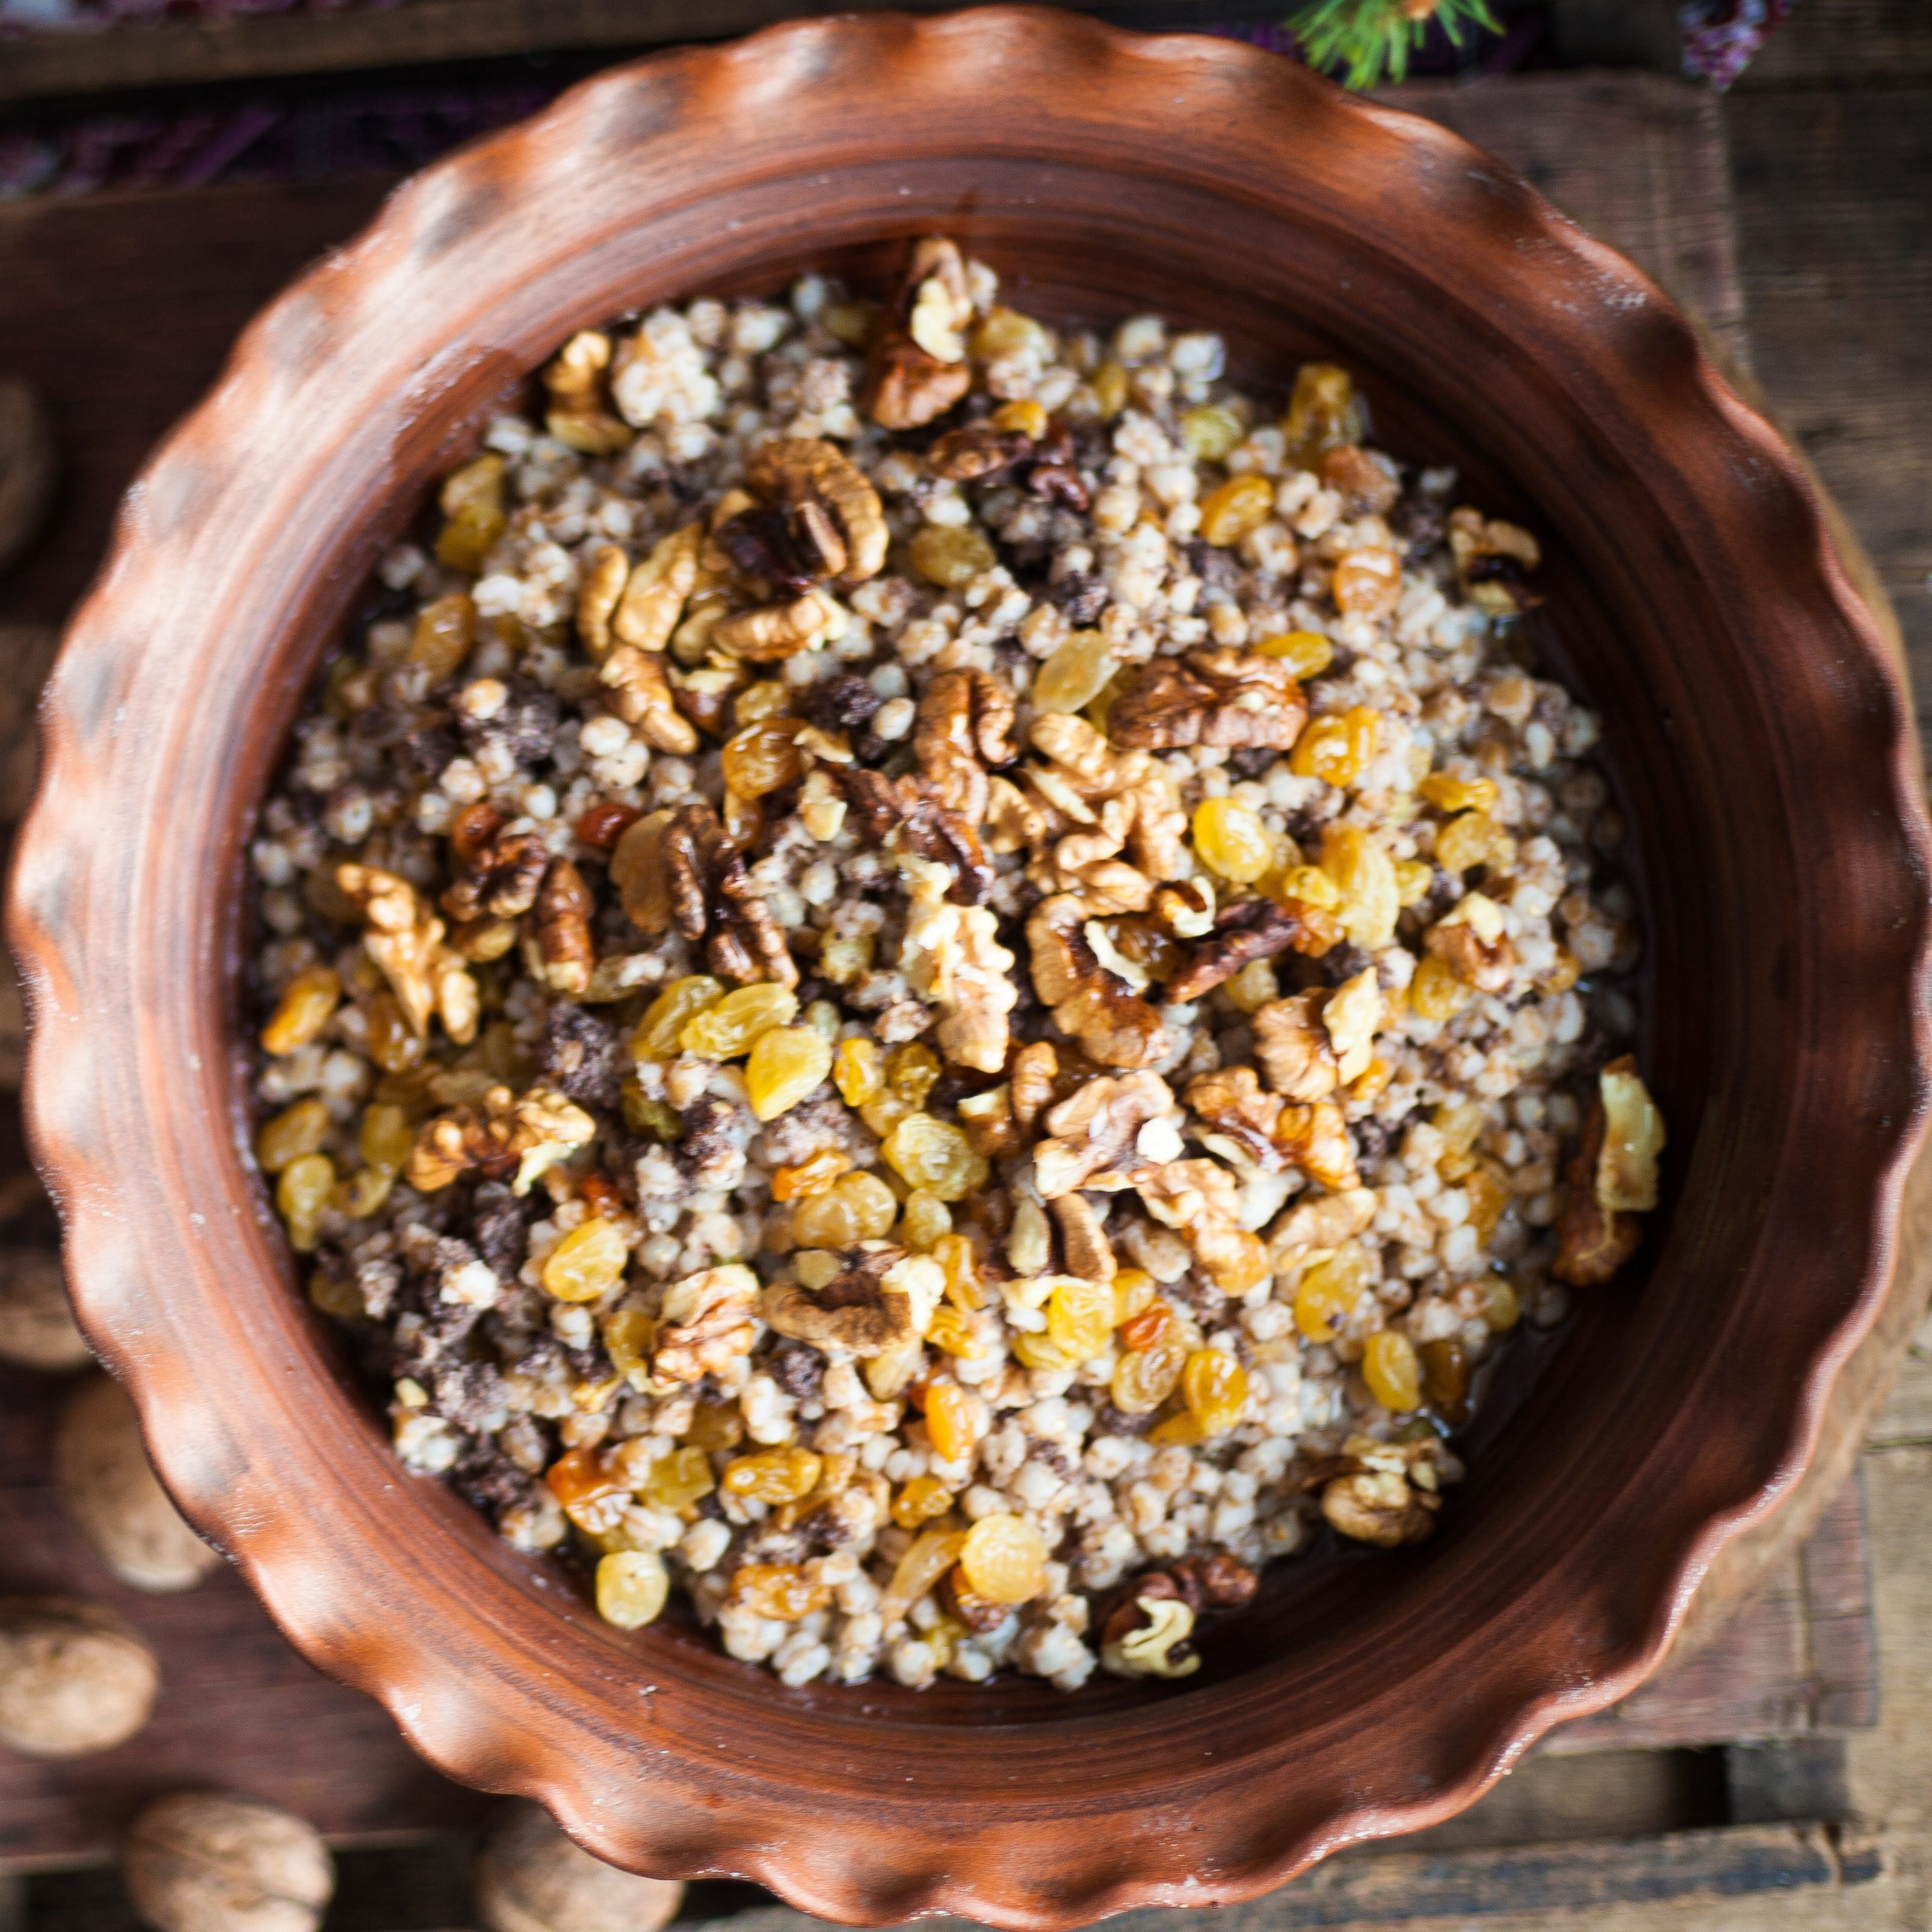 Traditional food for Orthodox Christmas. Kutya - wheat porridge with nuts, raisins, honey, poppy seeds. Wash down with compote of dried fruit.